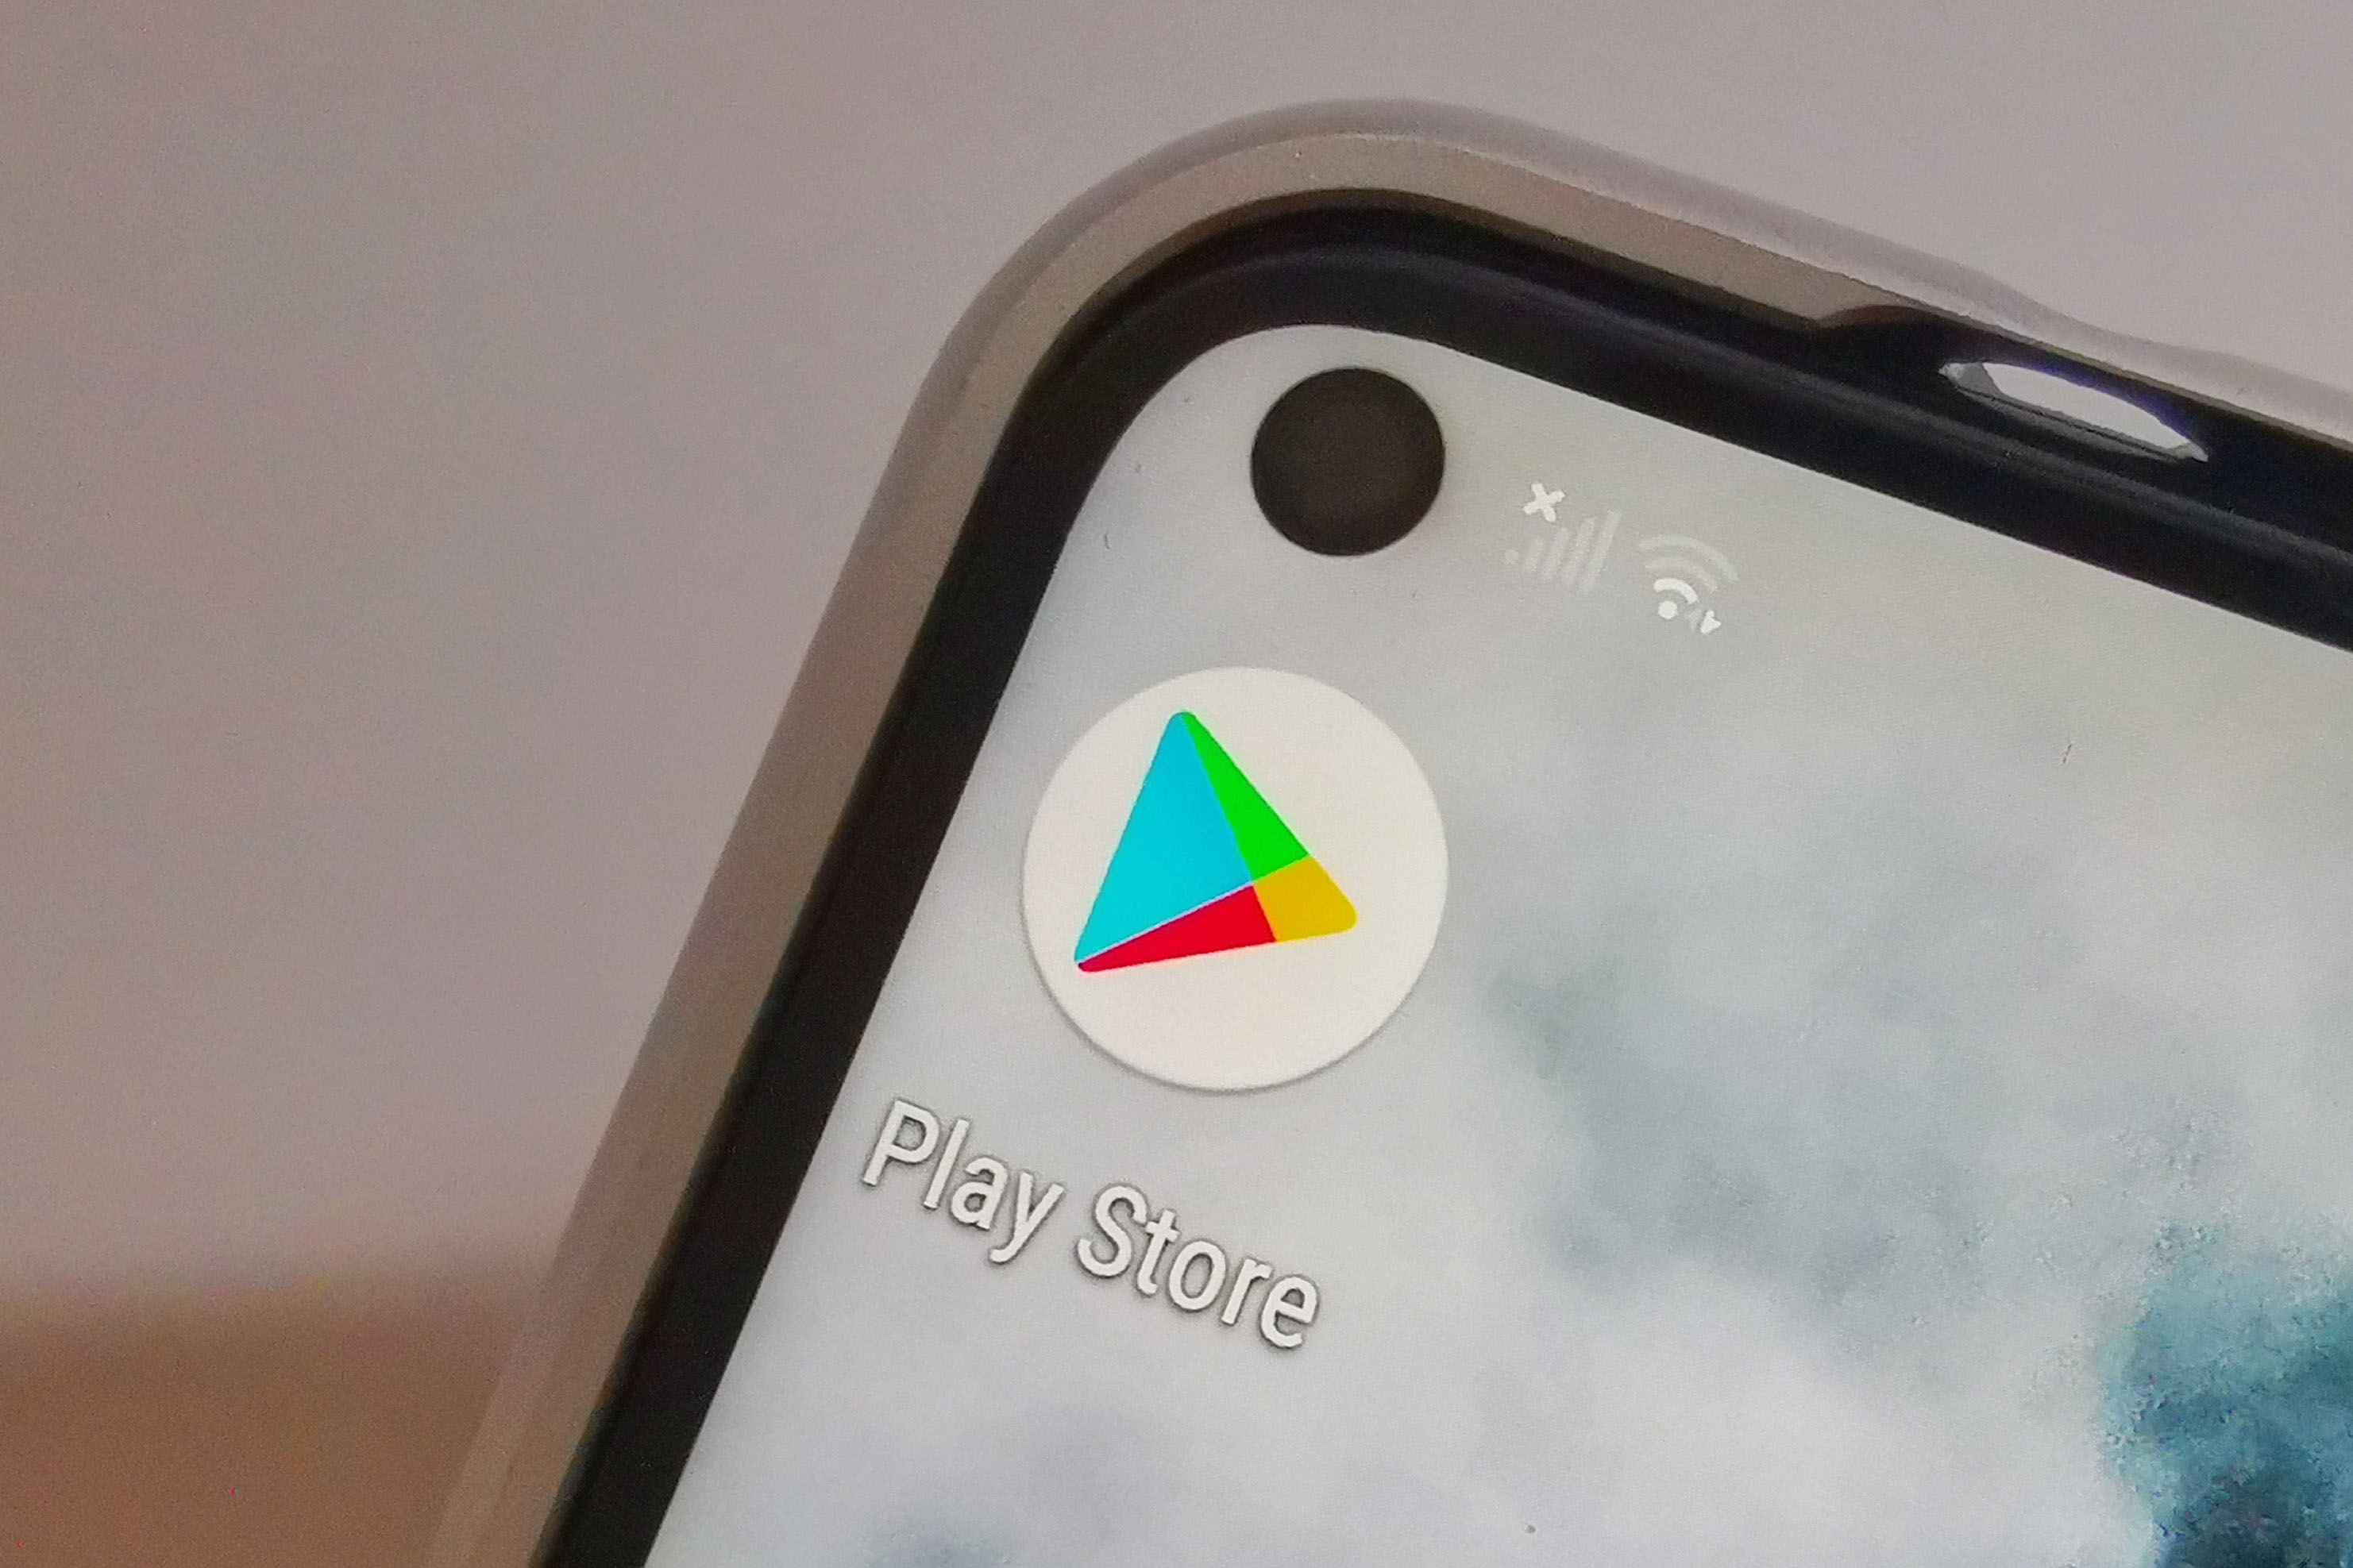 Google Play Store no Android